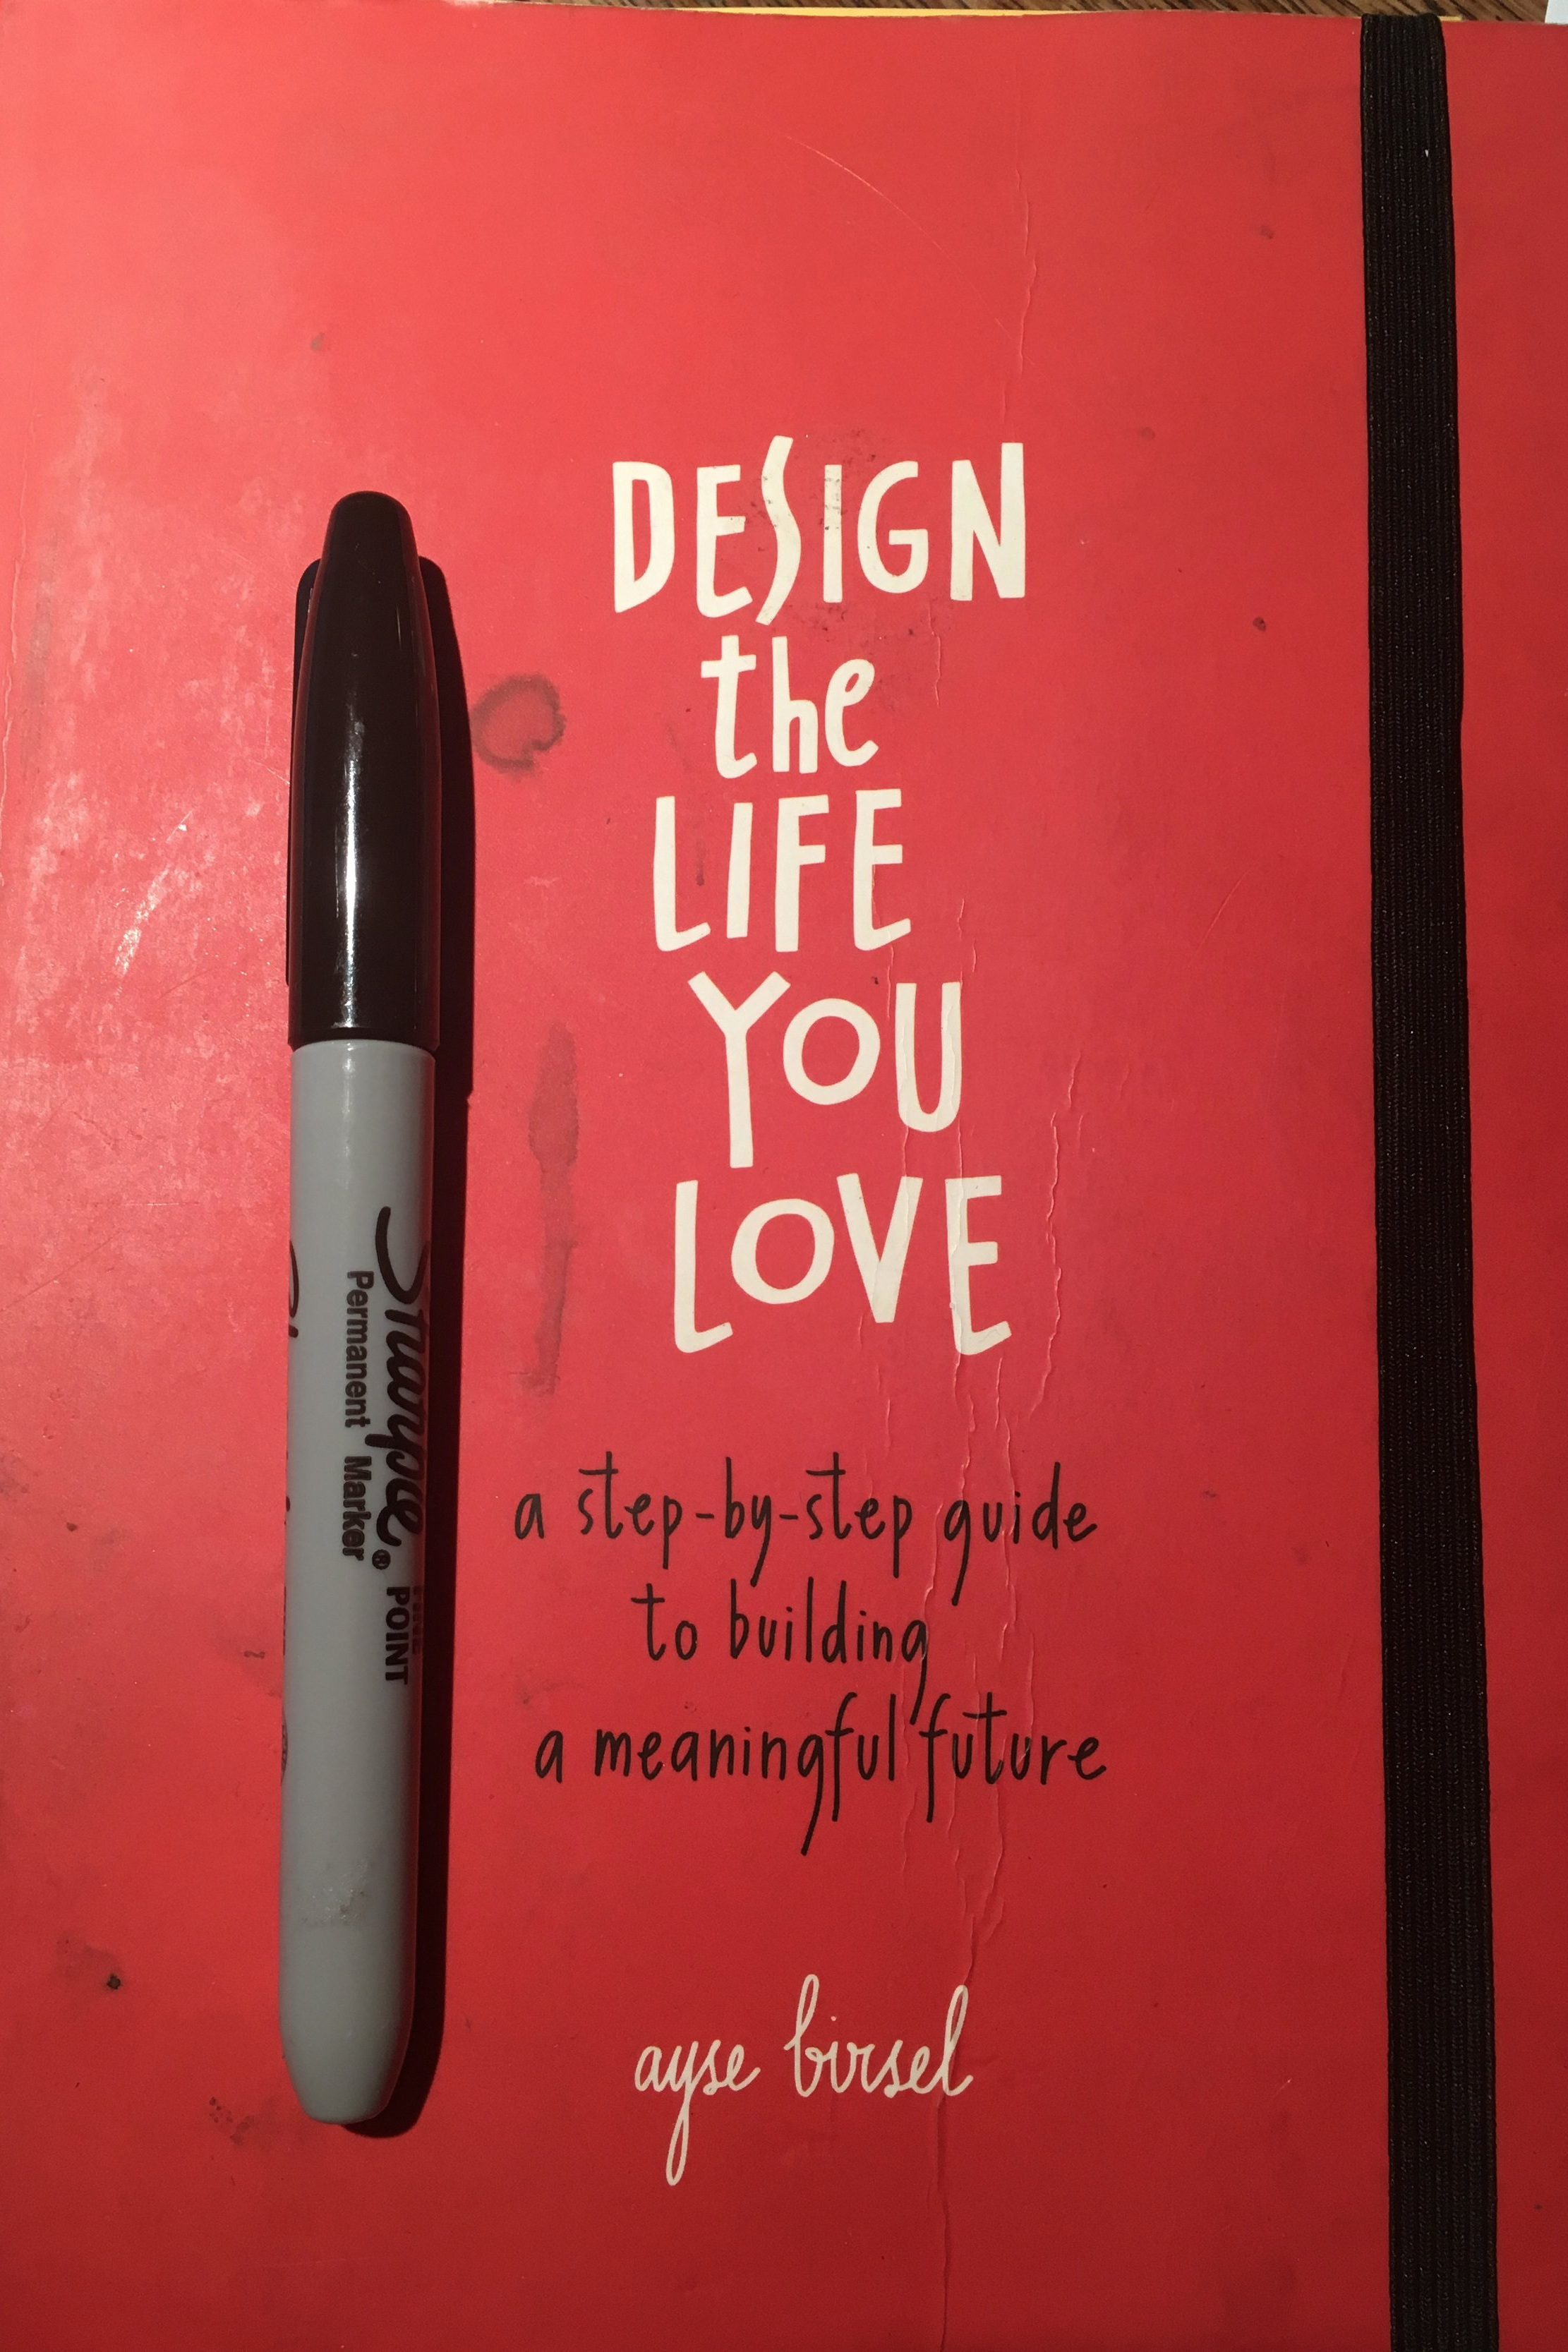 Design+the+life+you+love